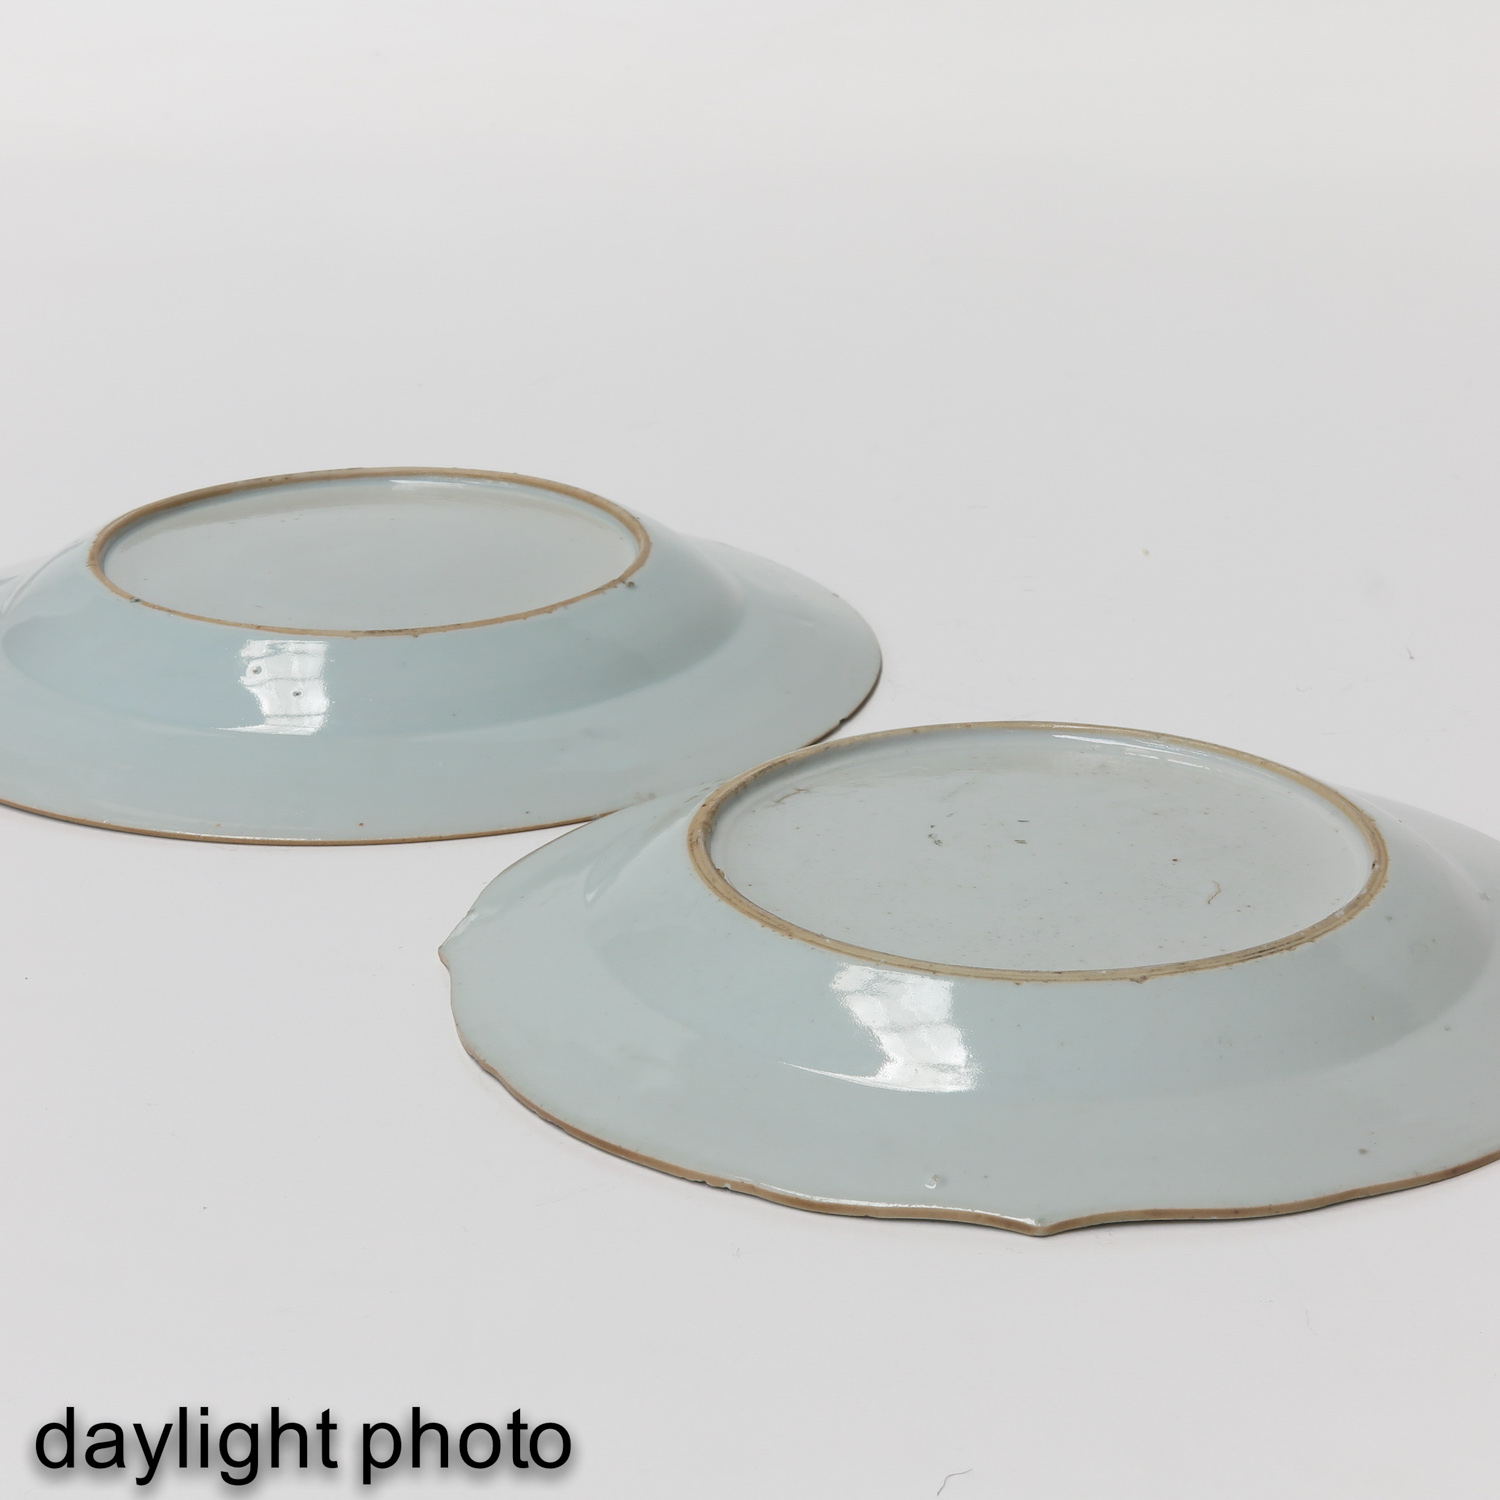 A Series of Famille Rose Plates - Image 10 of 10